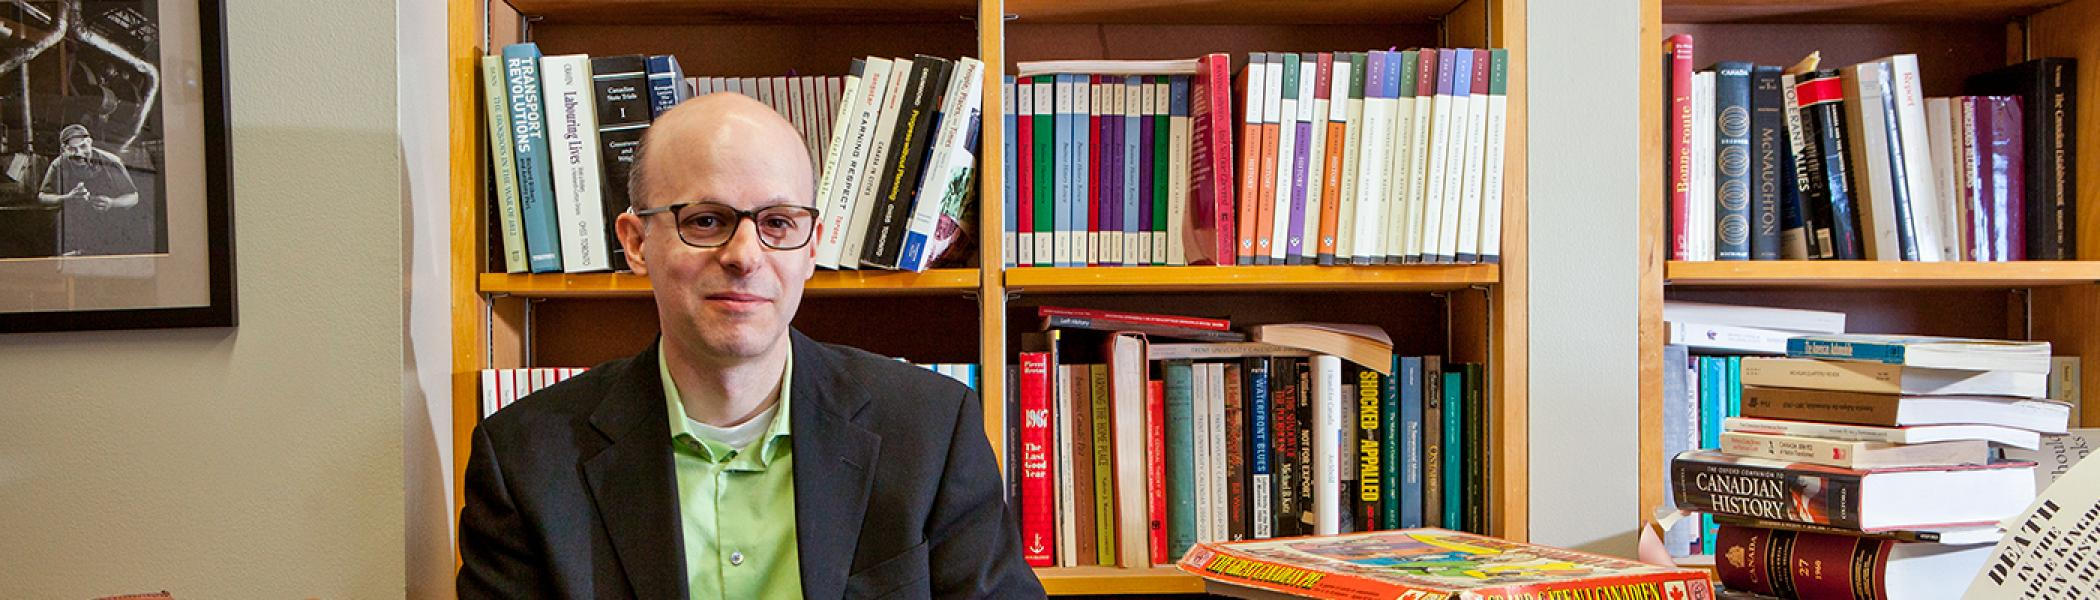 Professor Dimitry Anastakis smiling at the camera, seated in his office in front of a bookcase